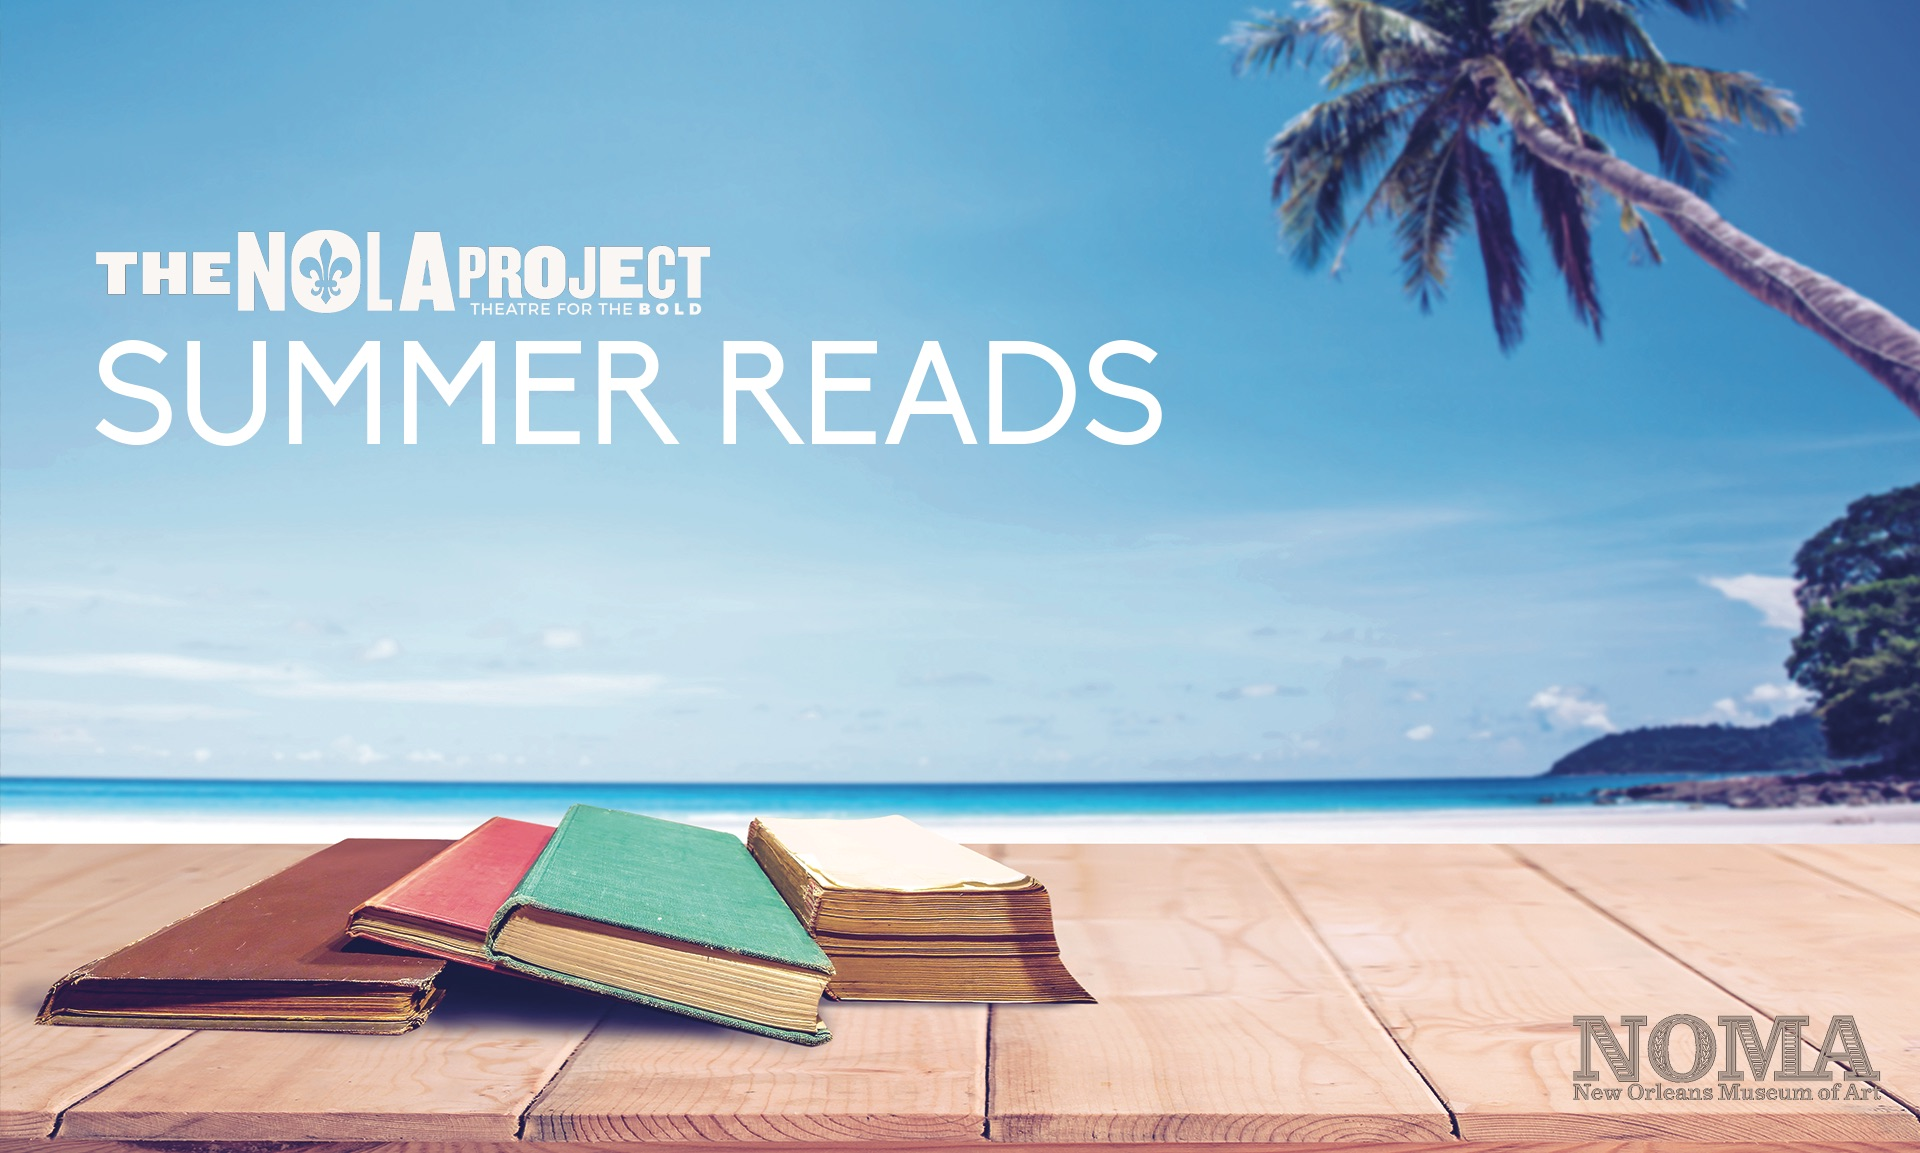 """A stack of books sits on a beachfront boardwalk. Overlaid text reads: """"The NOLA Project Summer Reads"""""""